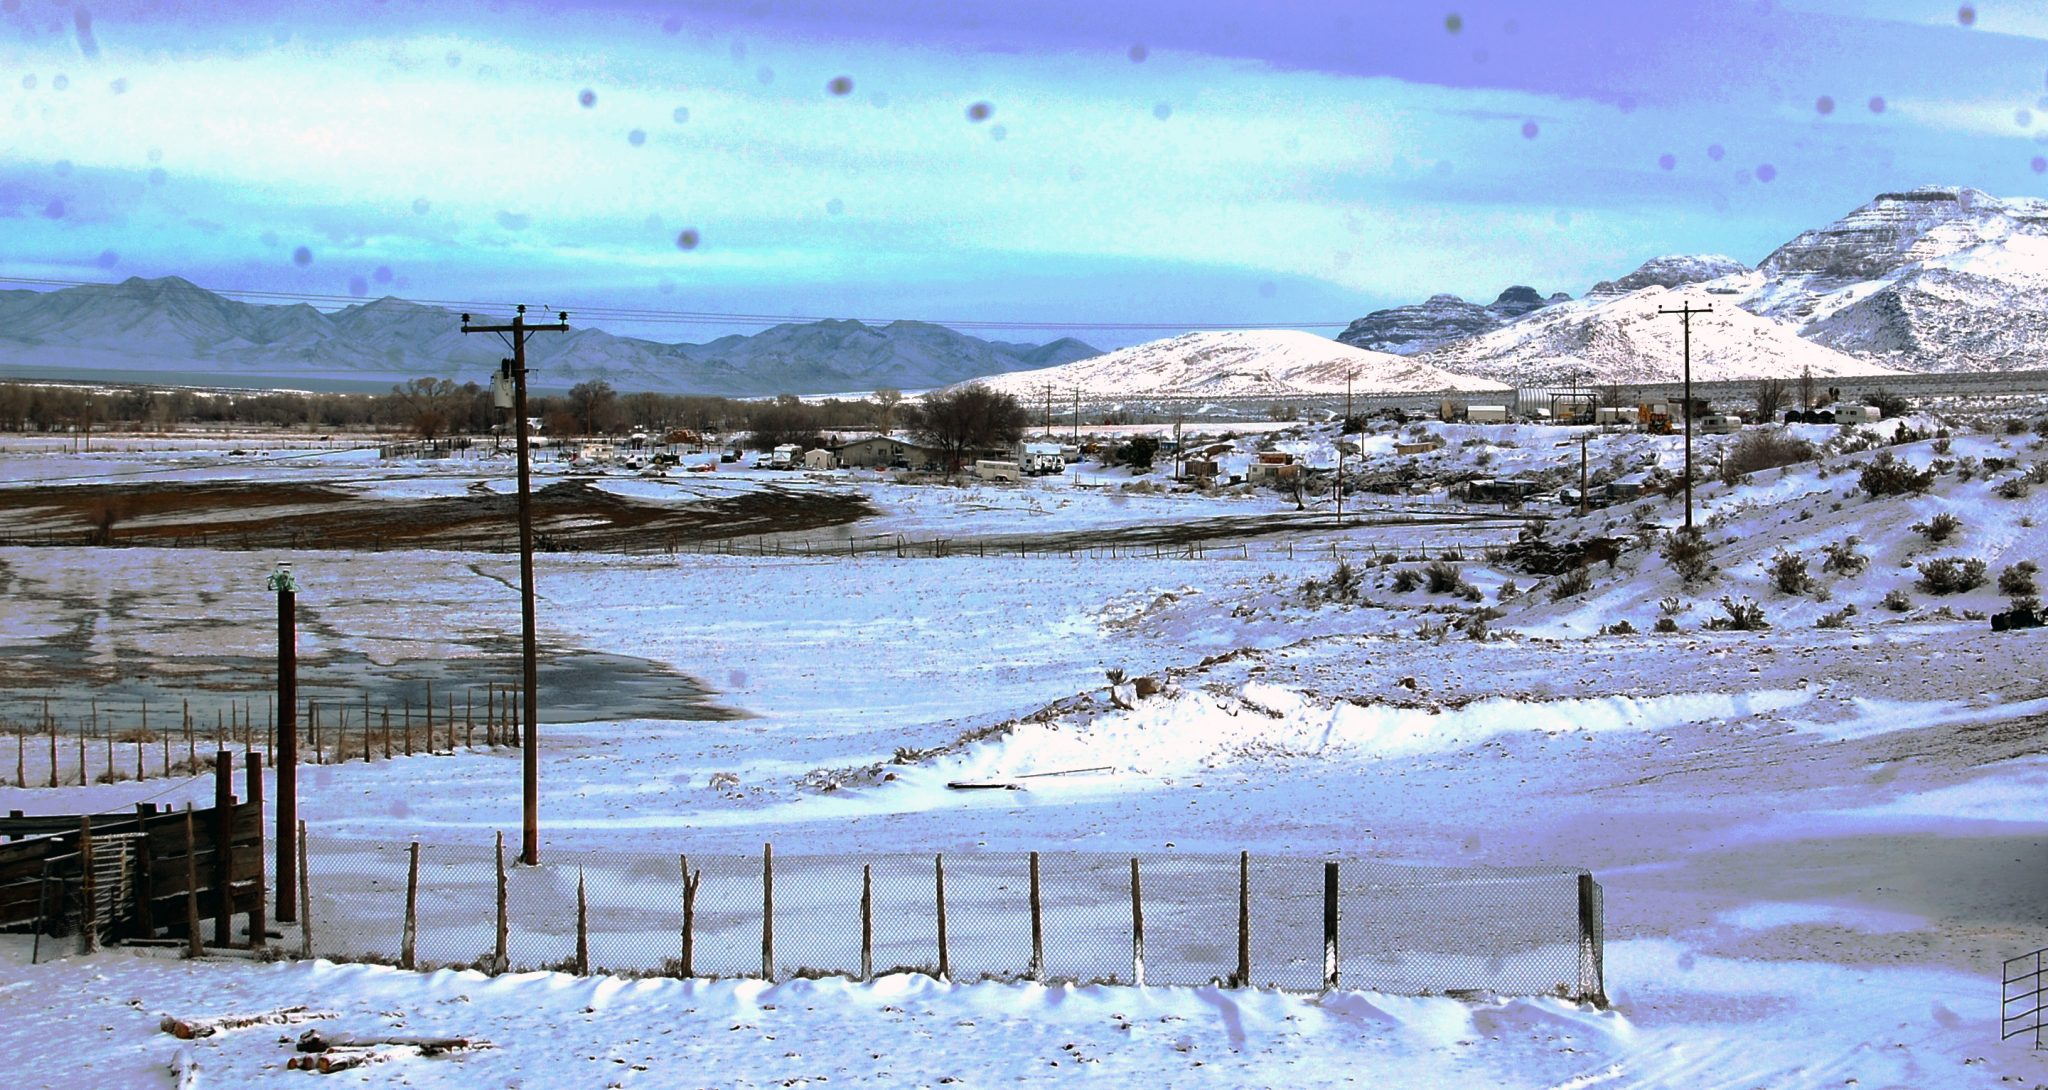 Heavy storm blankets county in snow